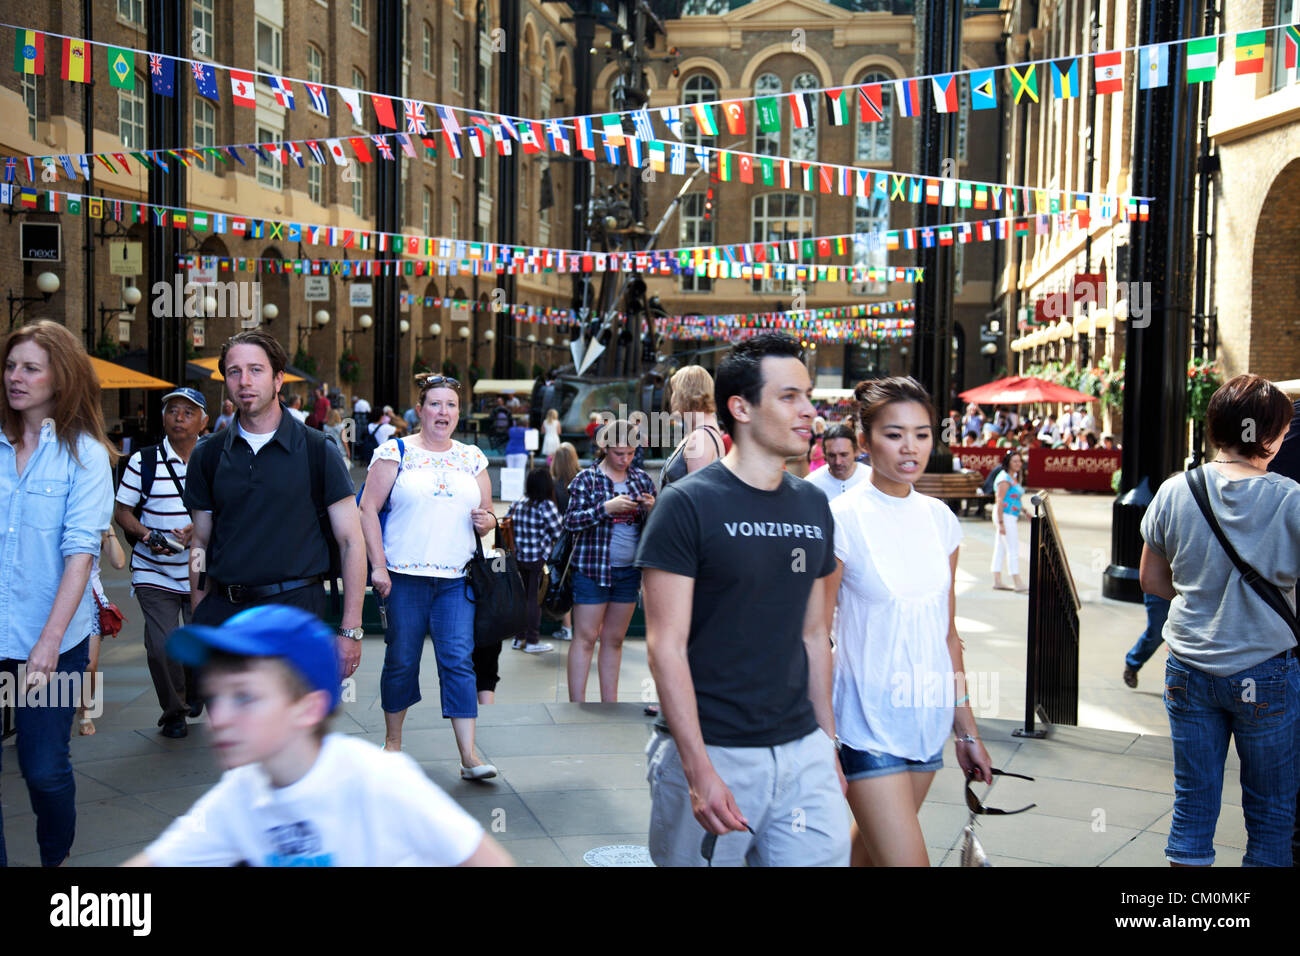 London, UK. 8th September, 2012. Flags of the World at Hays Galleria. The Mayor's Thames Festival is London's largest - Stock Image